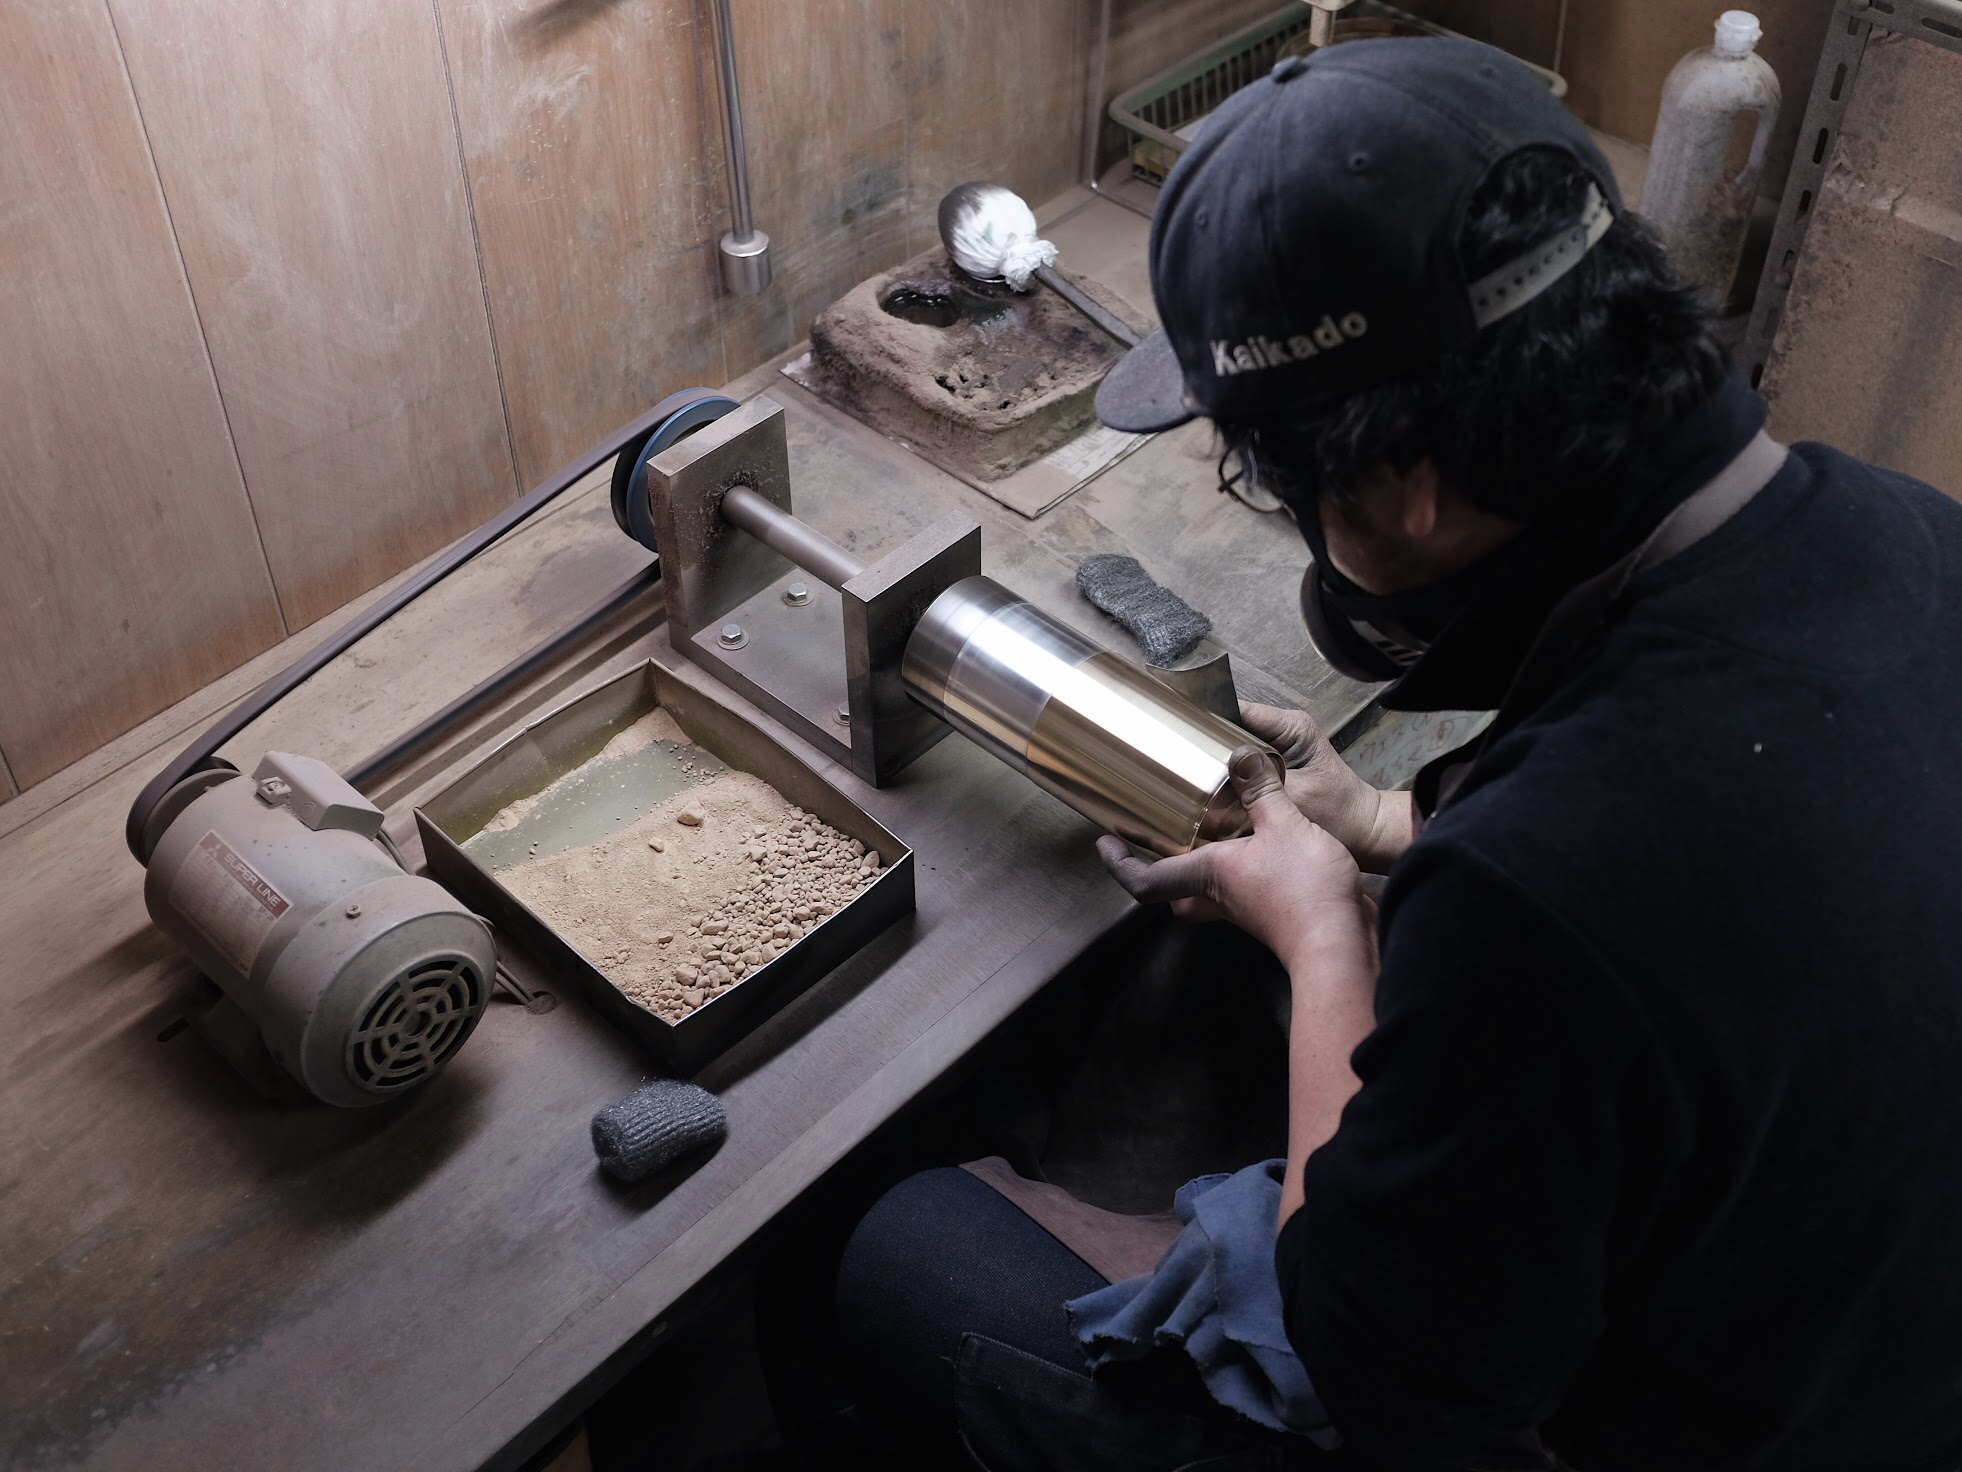 One of the final steps involves polishing the surface of individual tea caddies. The craftsman uses a very fine powder to eliminate the smallest of imperfections. This stage results in an immaculate and reflective finish that allows the forming of an even patina over time.